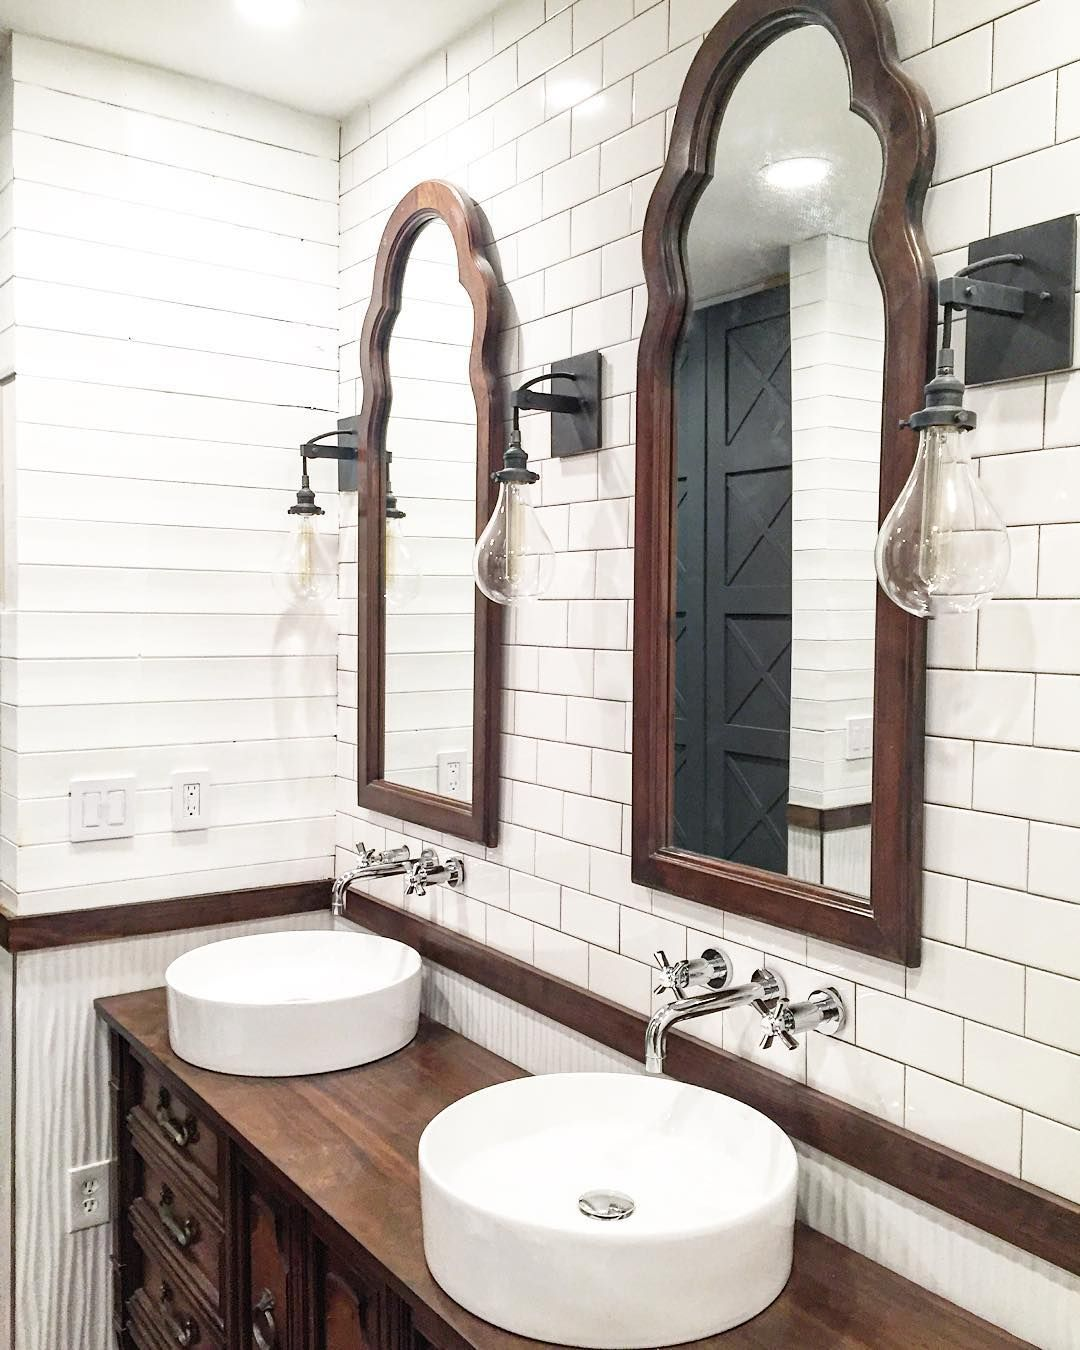 Rustic farmhouse bathroom design with plank walls and